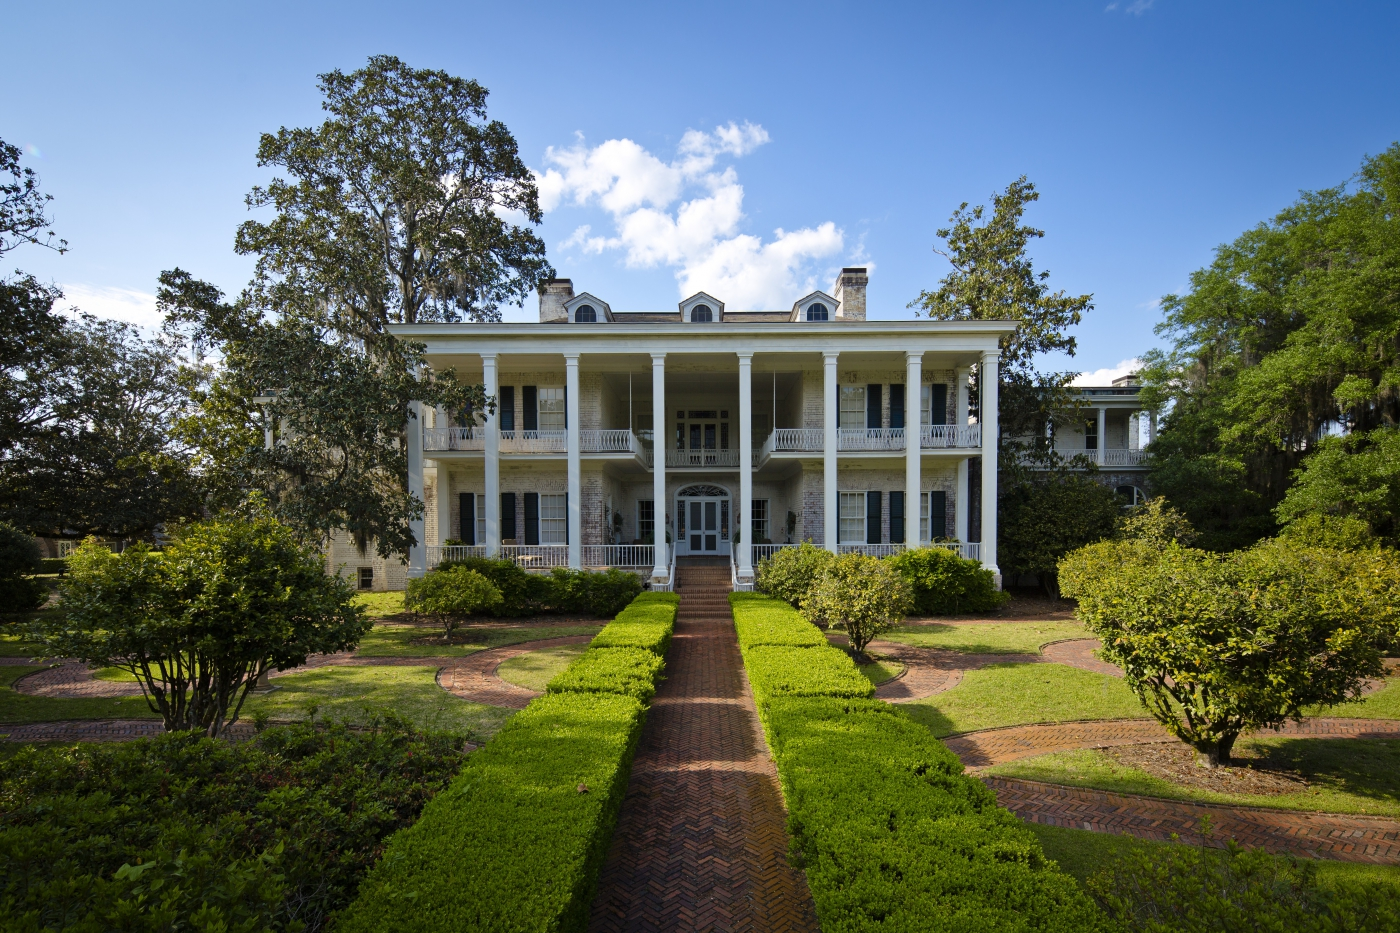 Georgia showcases Southern hospitality at its finest, giving visitors a rare combination of history and charm at the many historic home tours across the state.